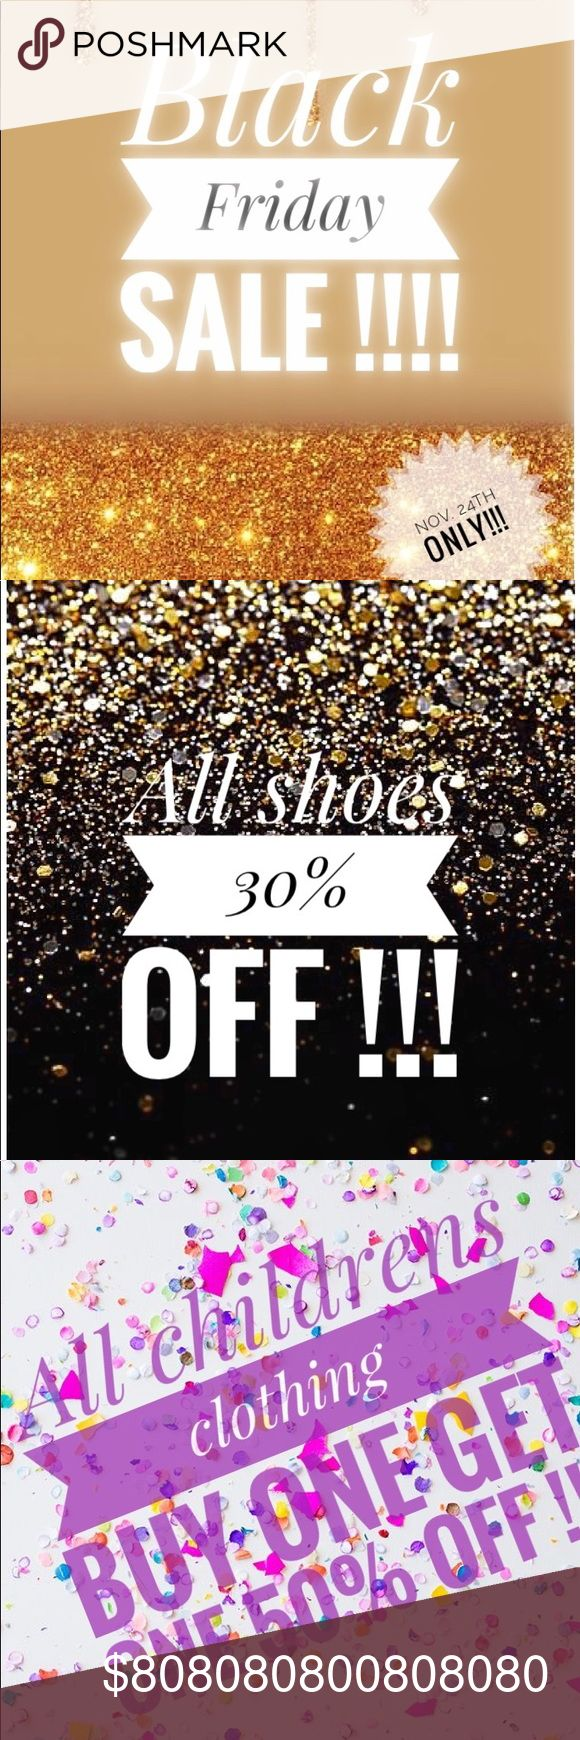 Sale🚨💥Sale🚨💥 Black Friday Sale🚨💥 Enjoy shopping my closet this Friday Nov. 24 ONe DAY SALE💥🎉💥🎉💥🎉💥.  Get some really good deals 🎉🎉 30% off all shoes Children's clothing BOGOHO Soooo💕💕💕 if you have had your 👀 on something you like grab it before it's gone 🏃🏽♀️💨 Happy Holidays 🍗🦃🎄🎉 Other